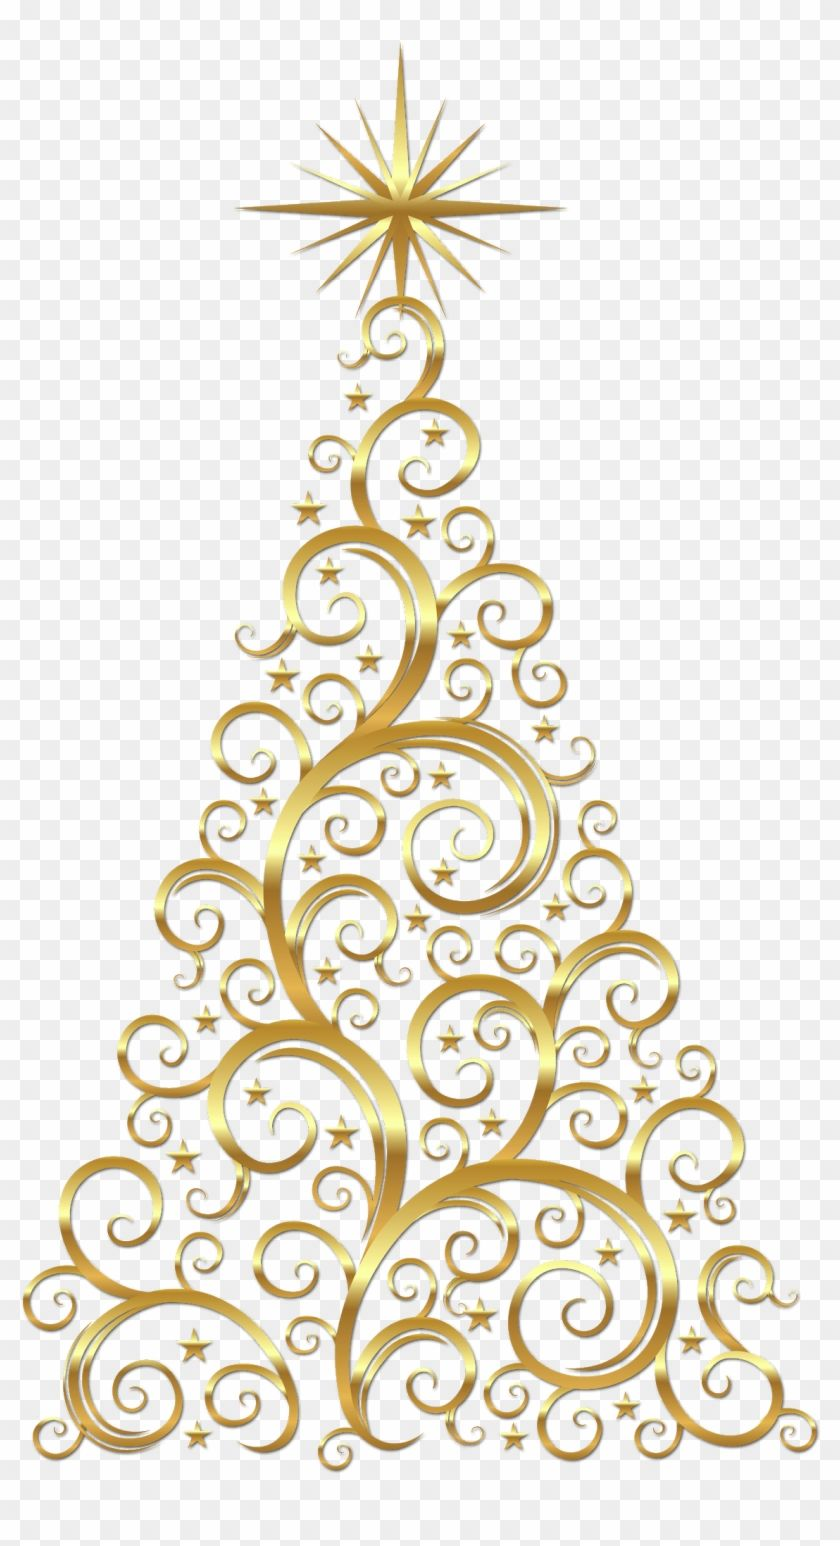 Find Hd Christmas Tree Christmas Day Gold Christmas Tree Clipart Hd Png Download To Search Christmas Tree Clipart Christmas Tree Images Gold Christmas Tree